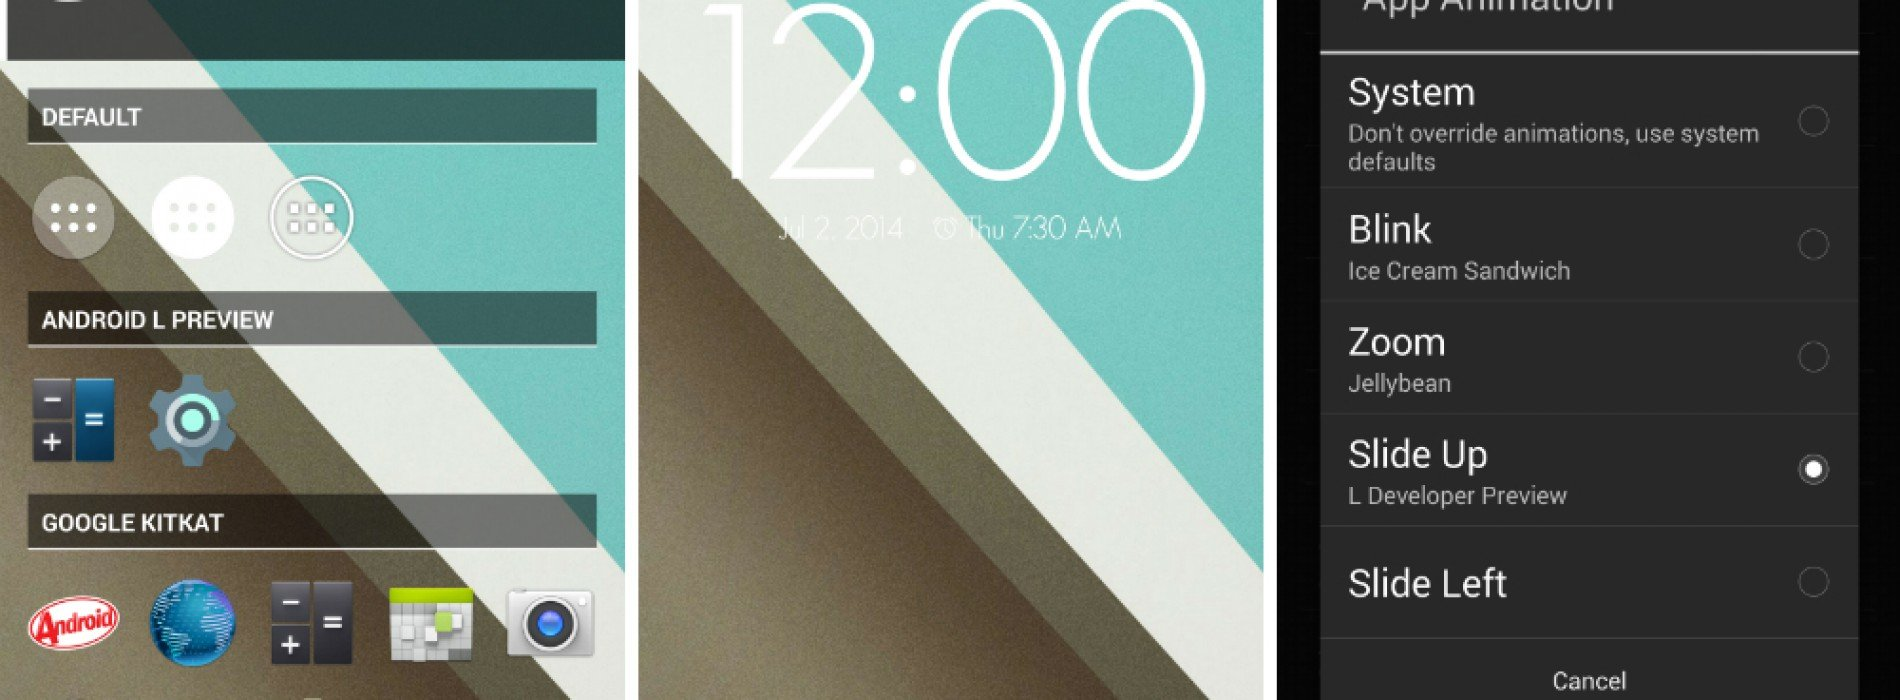 Nova Launcher Beta updates with Android L interface